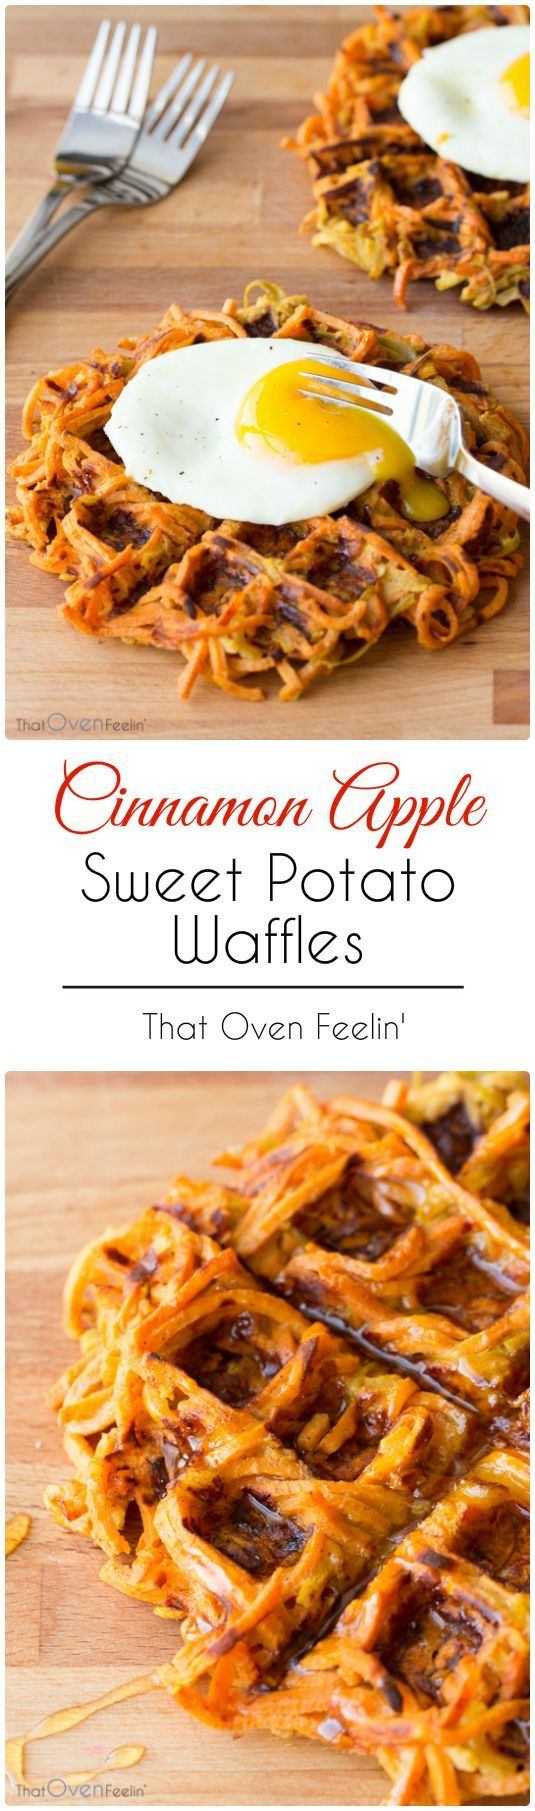 Cinnamon Apple Sweet Potato Waffles #cinnamon #recipe  http://www.zhounutrition.com/